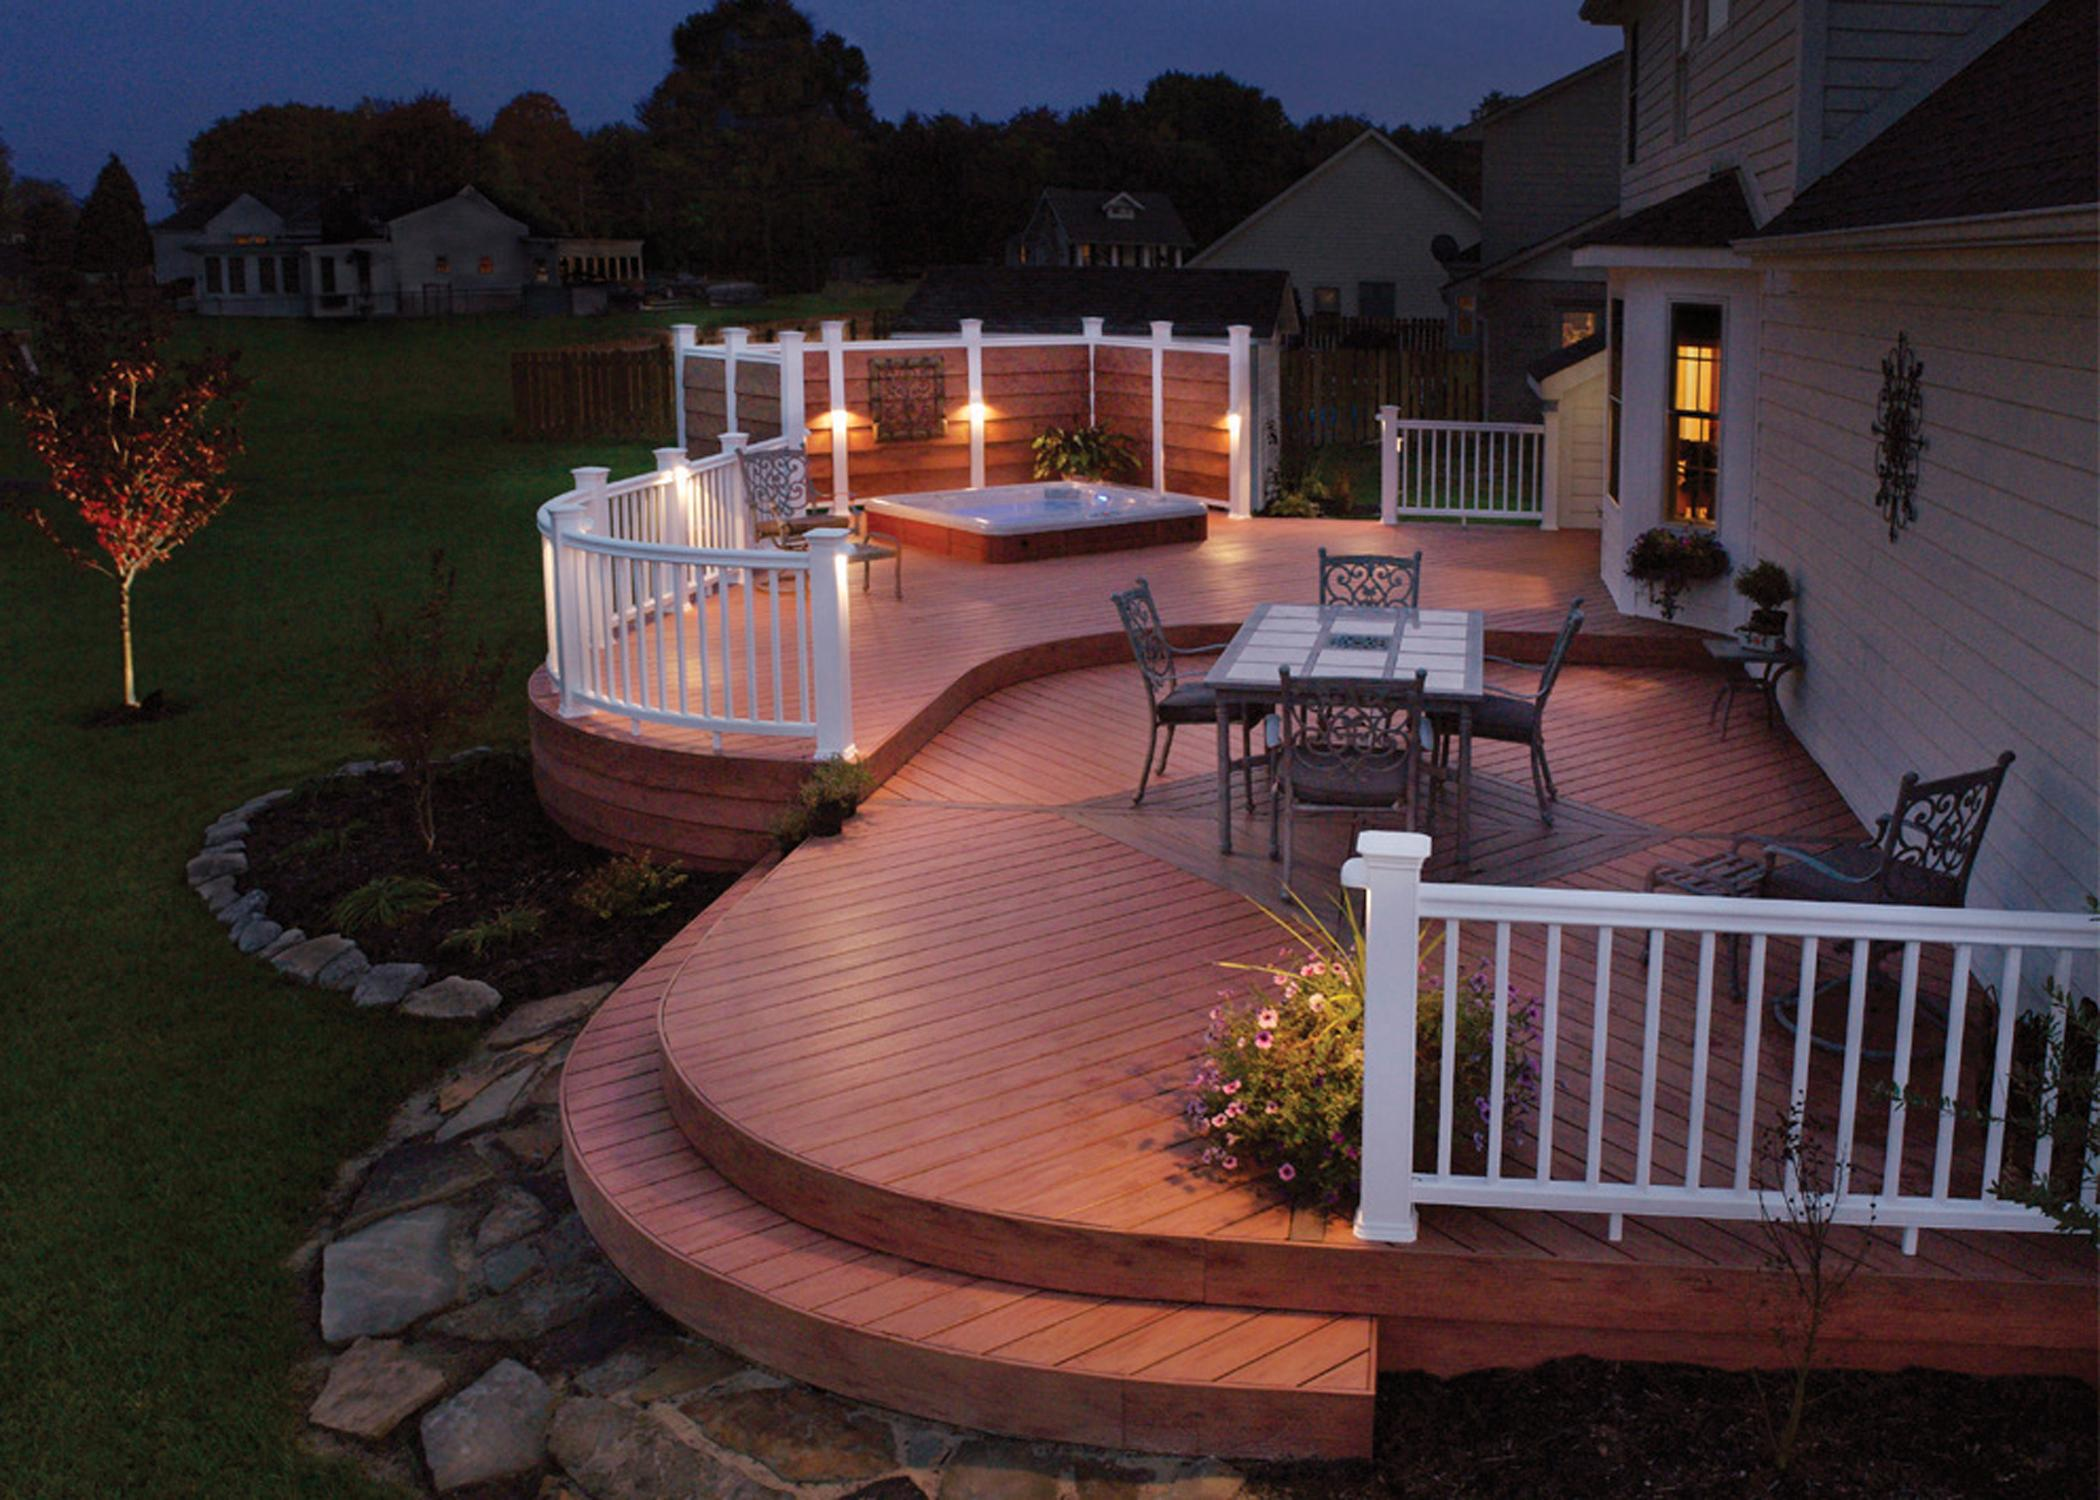 Deck lighting fixtures lighting design pictures Patio and deck lighting ideas